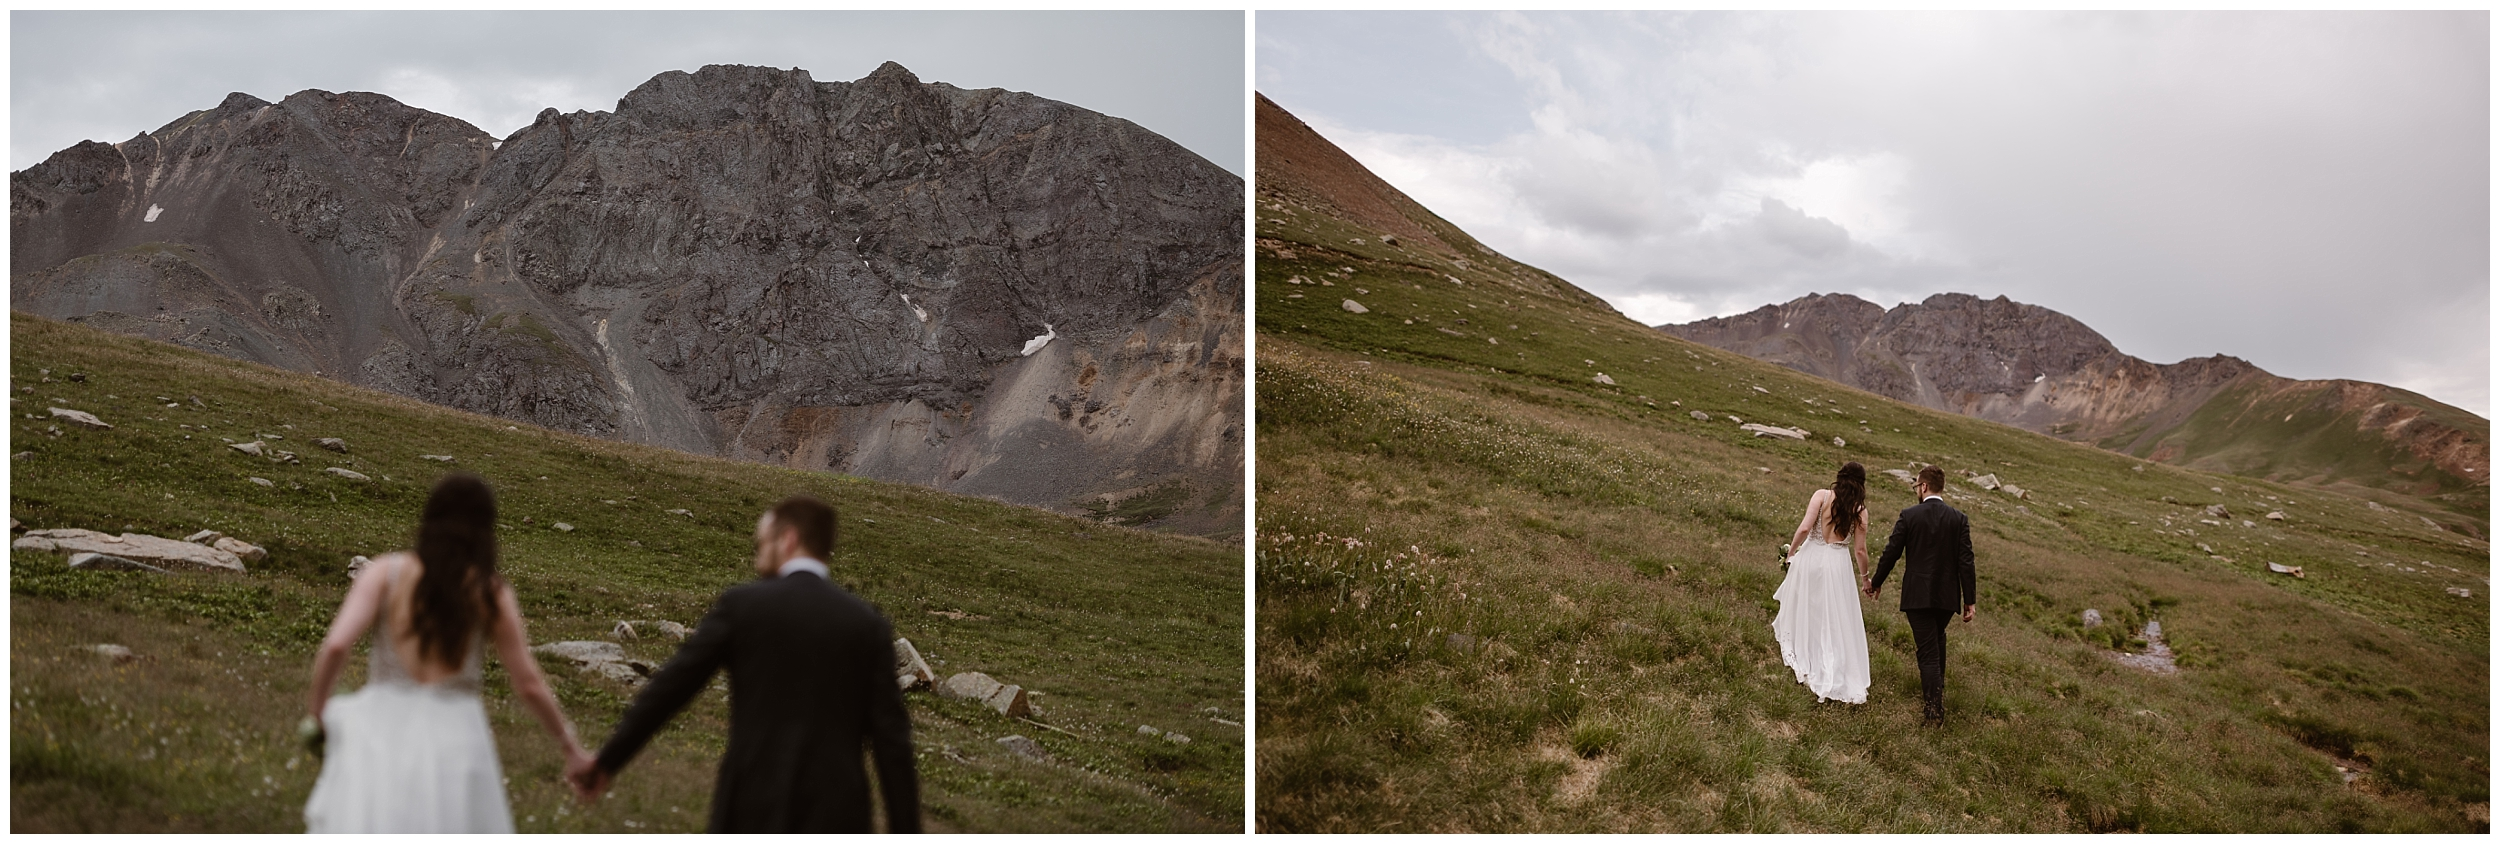 These side-by-side elopement photos, captured by Adventure Instead, show the bride and groom hiking up a lush, green Colorado mountain side toward the spot where they plan to have their elopement ceremony.